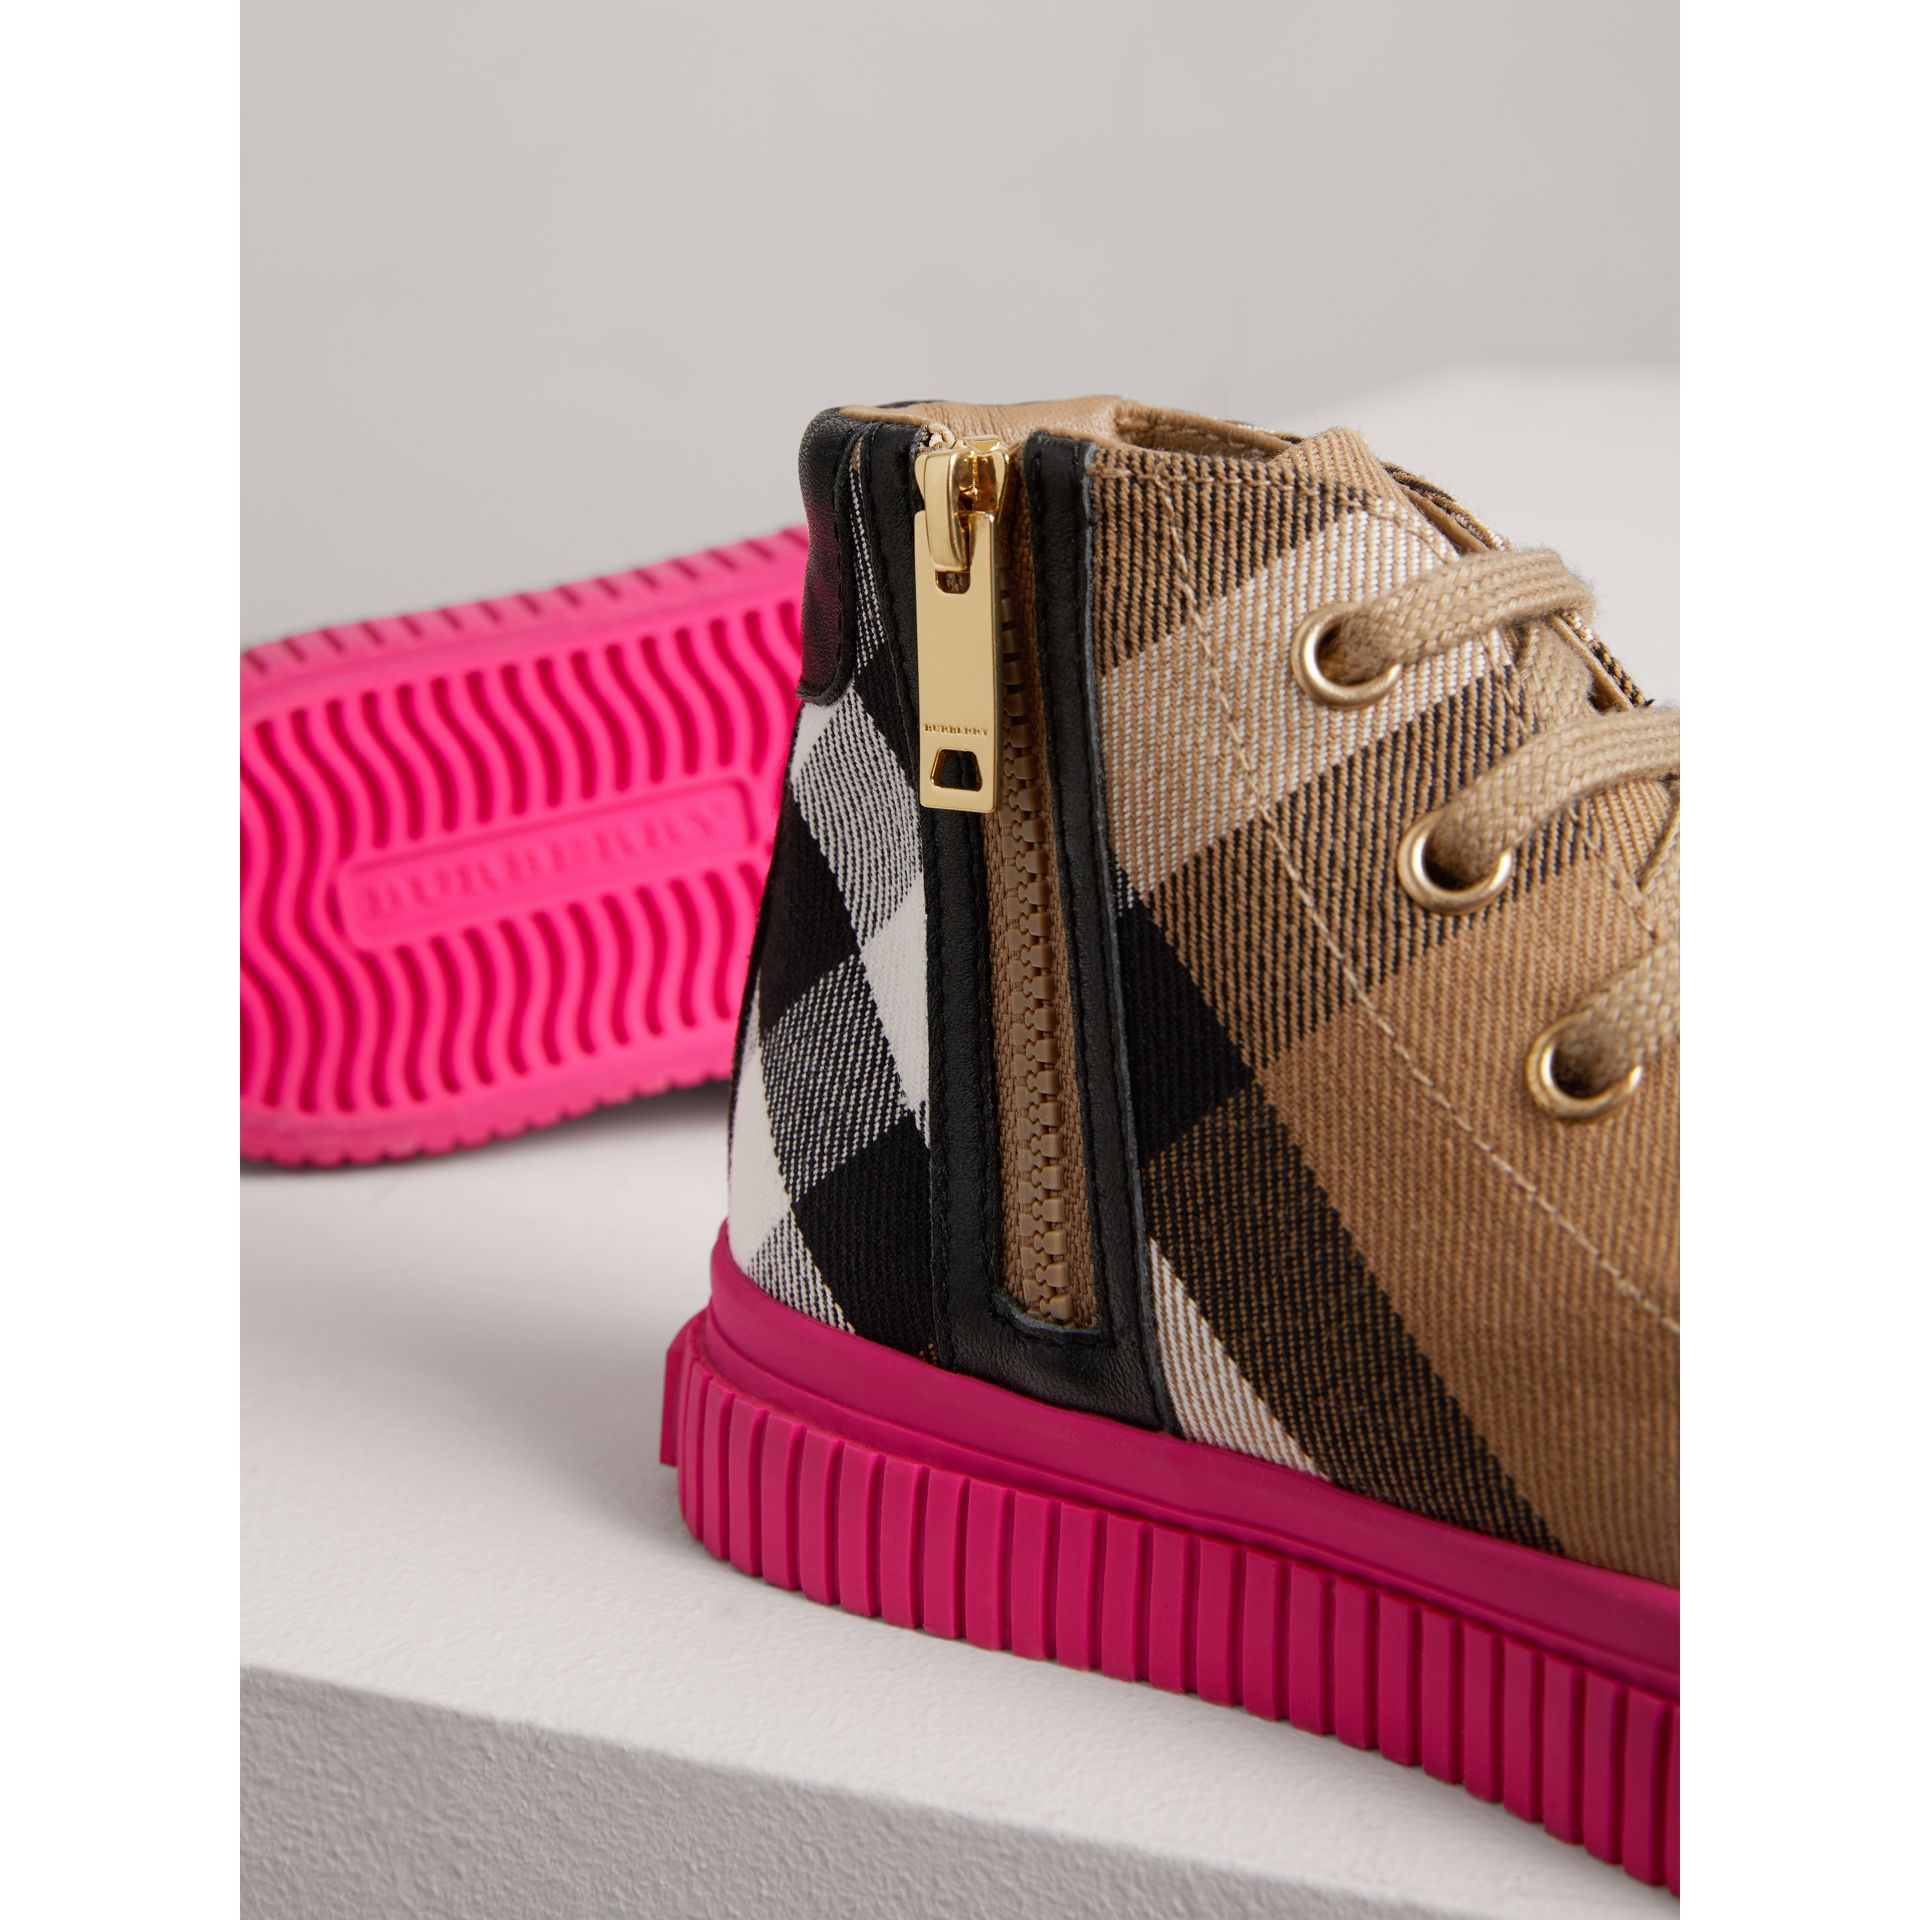 House Check and Leather High-top Sneakers in Classic/neon Pink | Burberry United Kingdom - gallery image 1